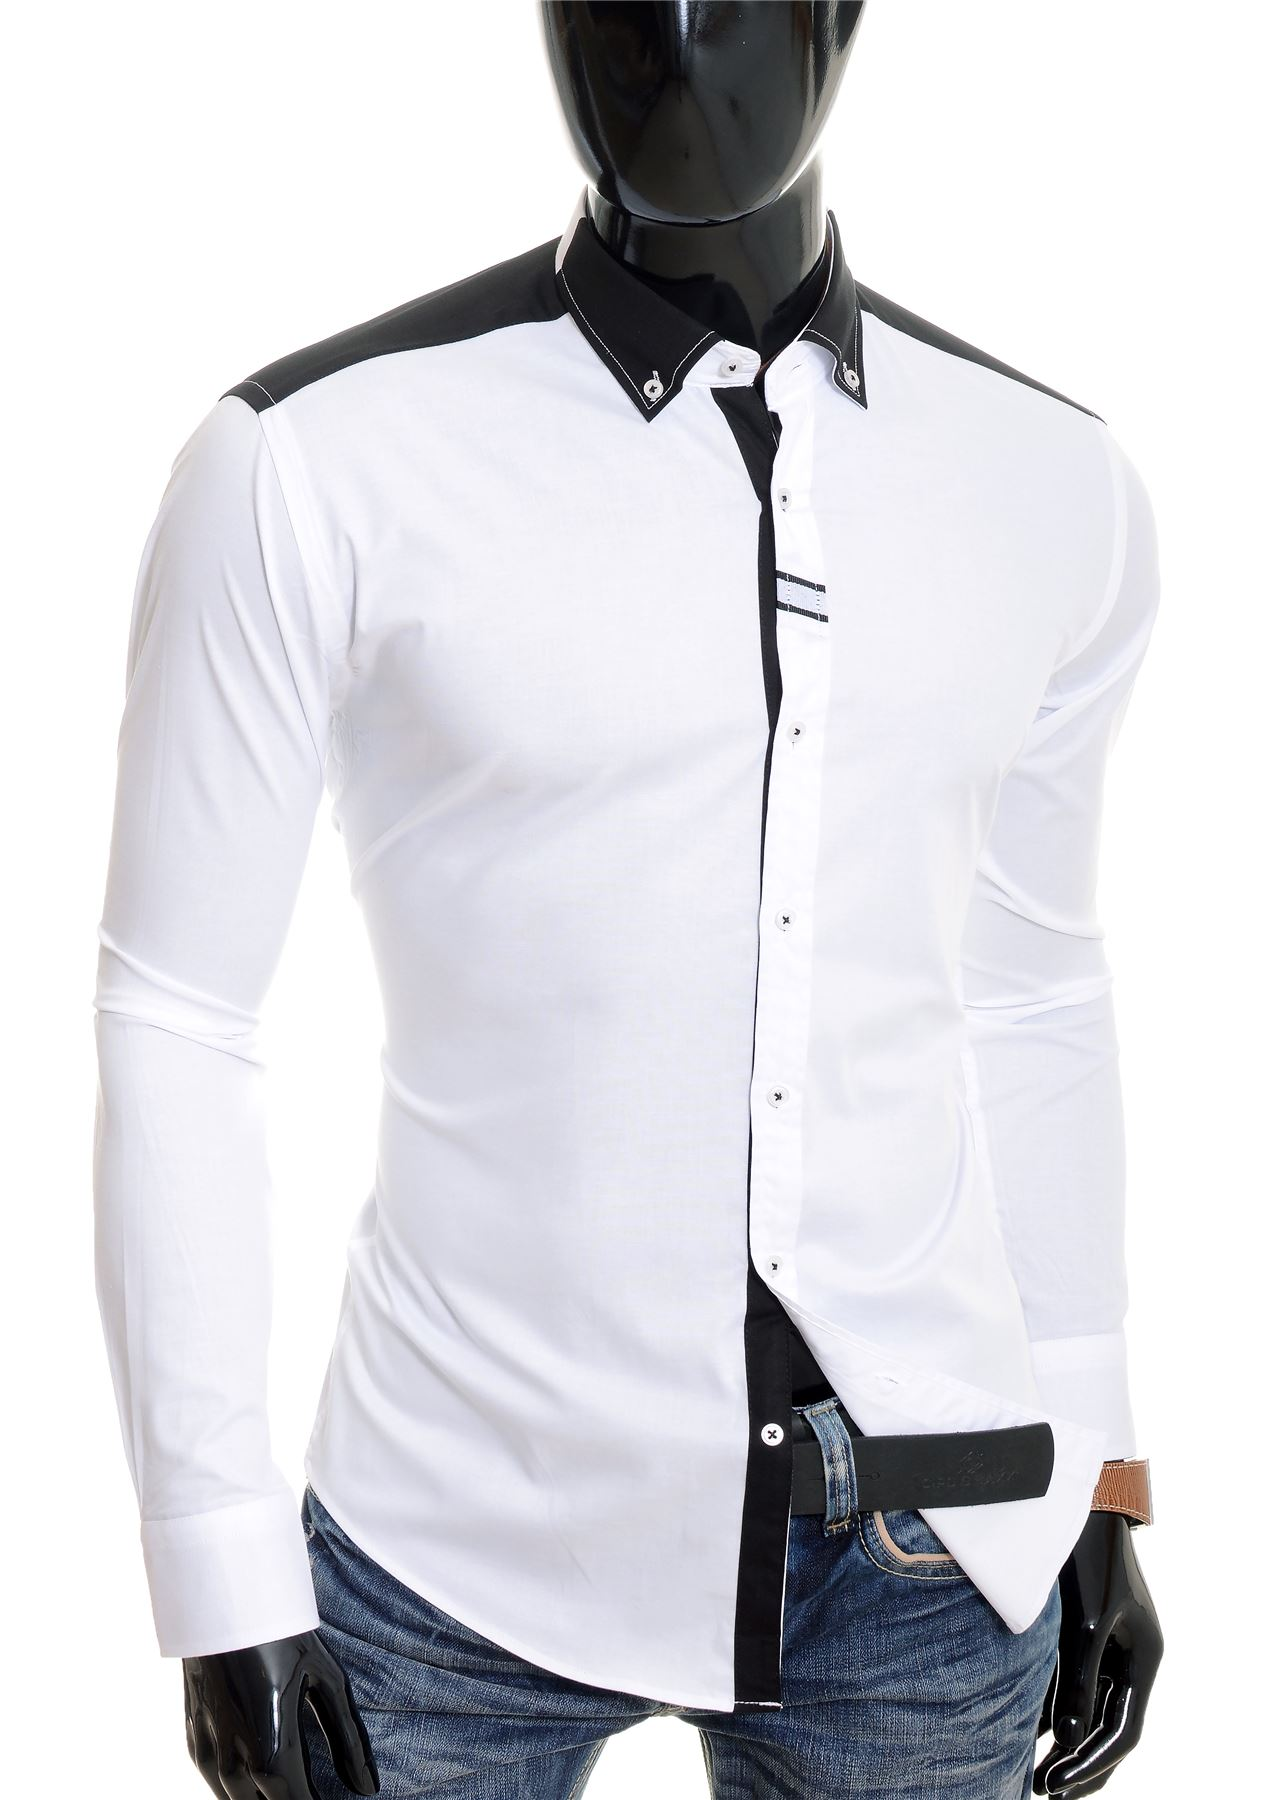 Cipo-amp-Baxx-Designer-Men-039-s-Elegant-Shirt-White-Black-Cotton-Slim-Contrast-Cuffs thumbnail 10